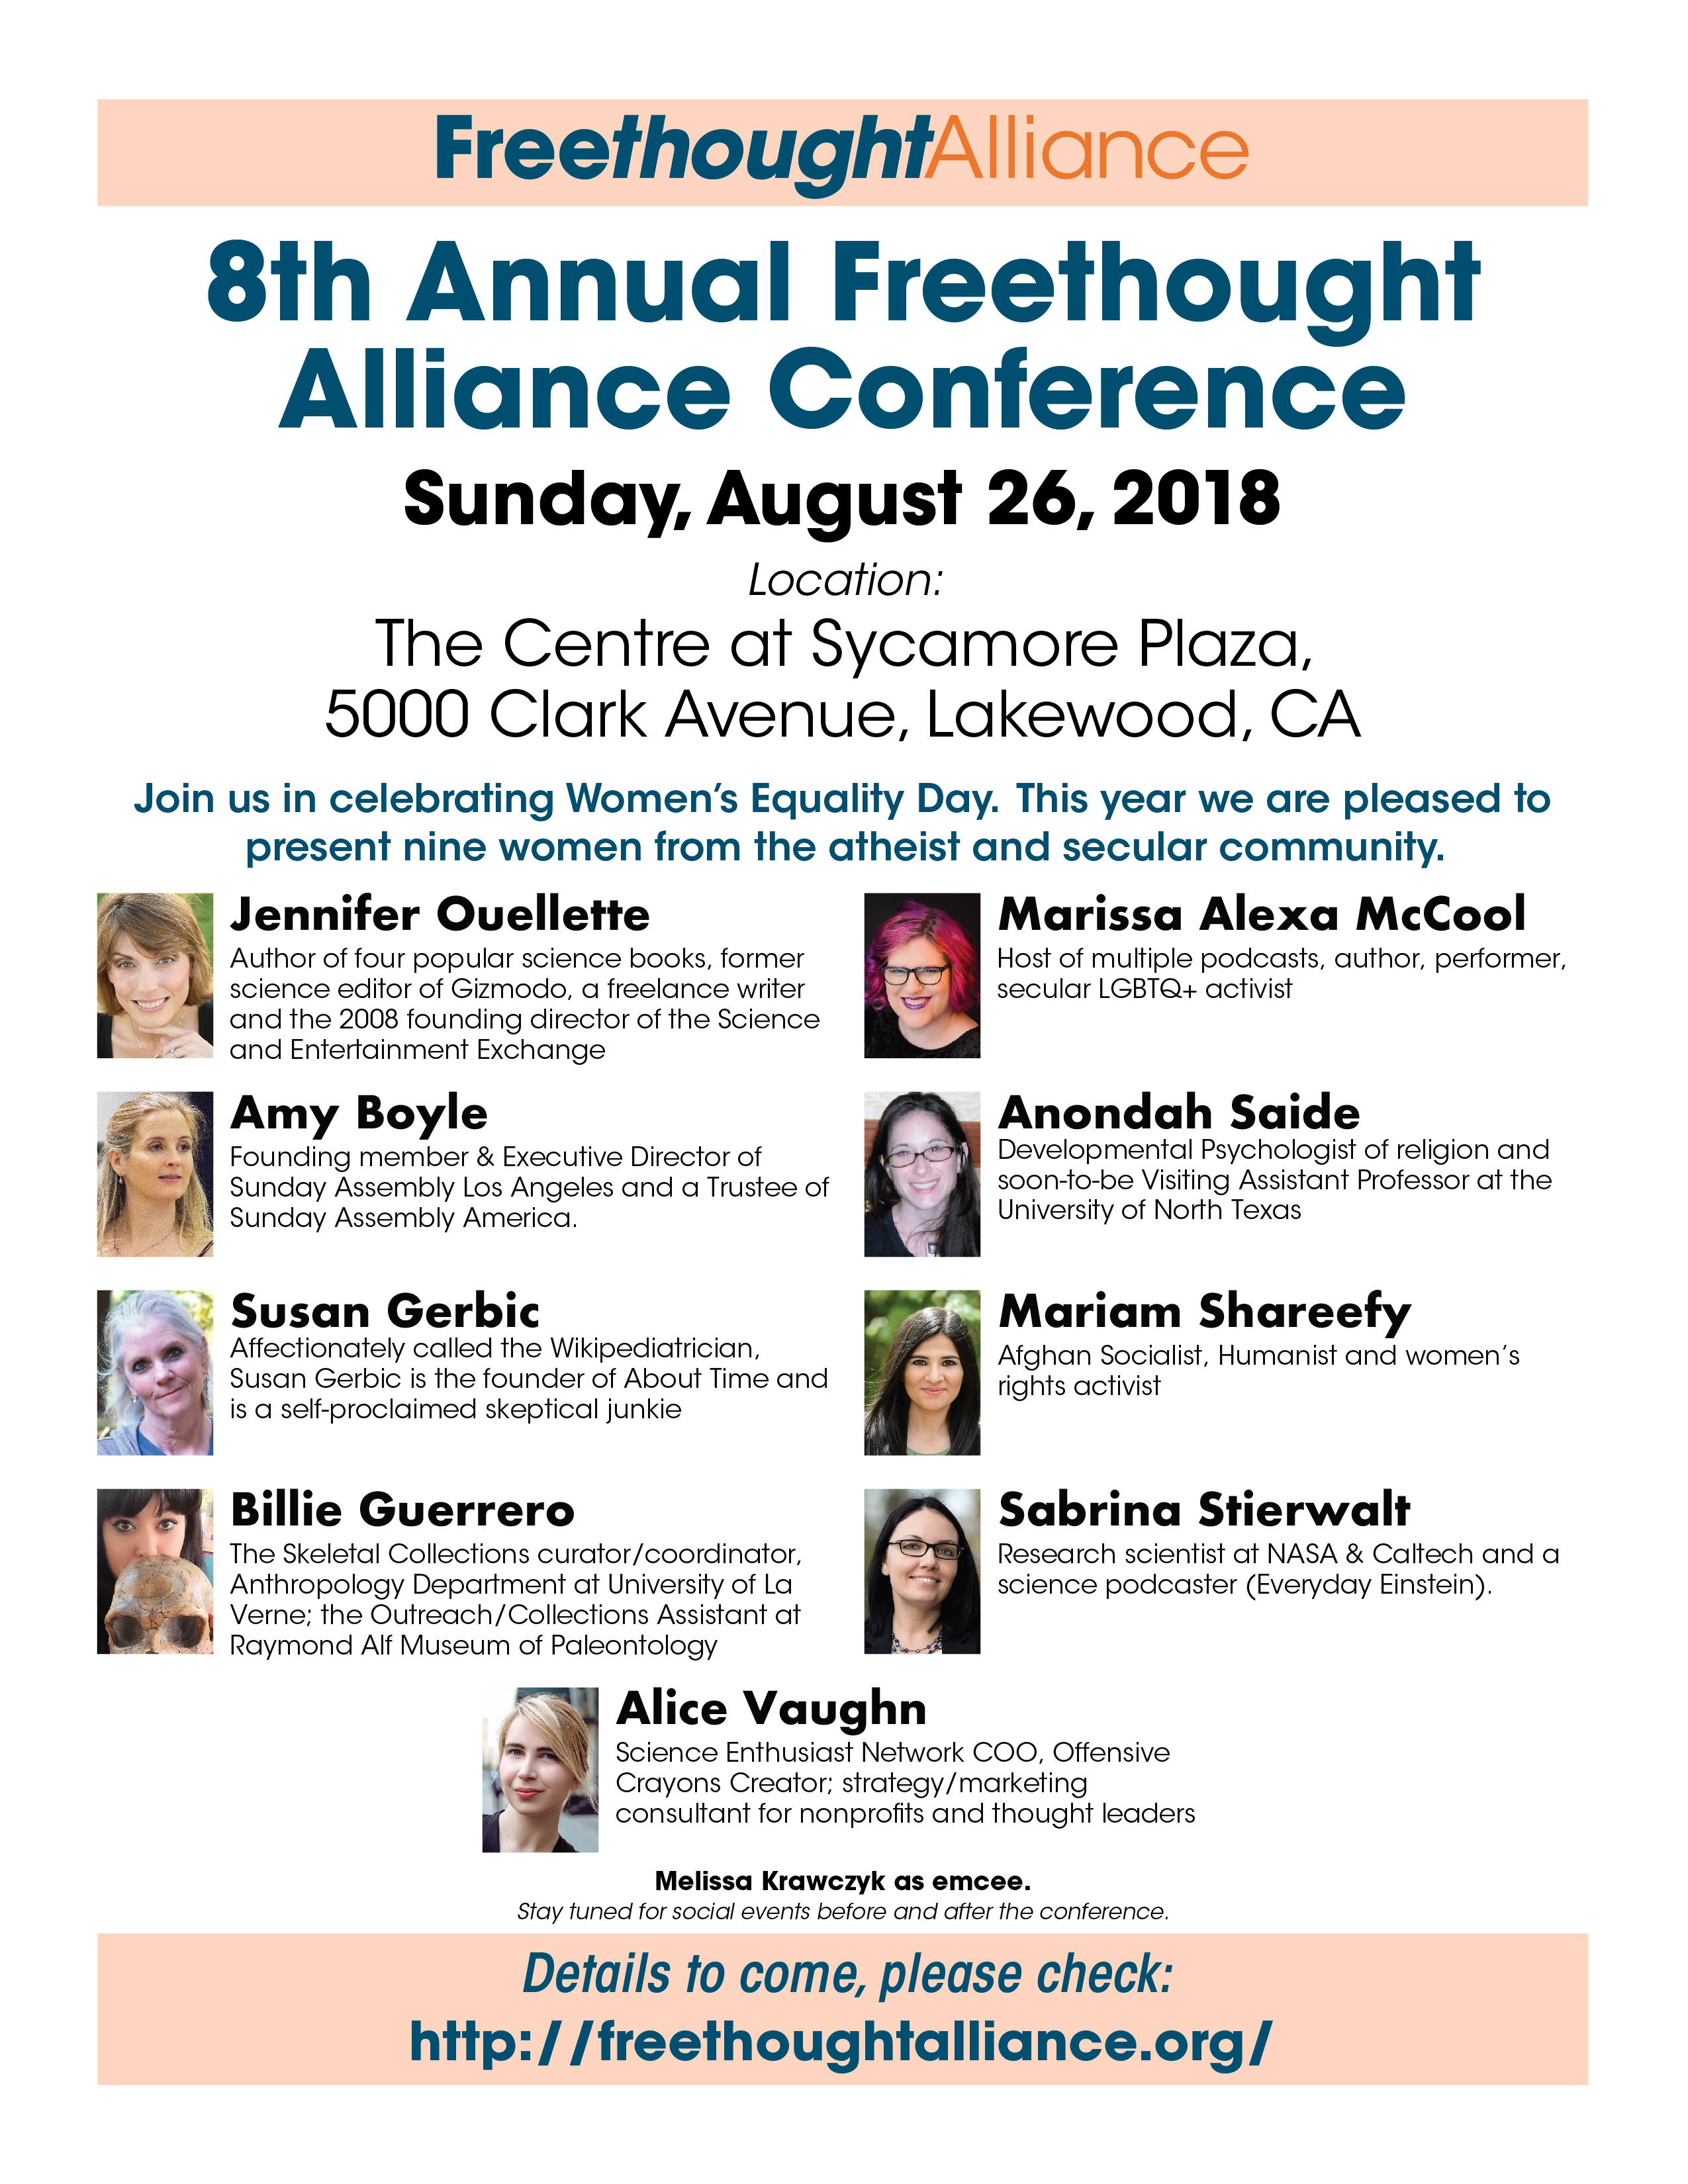 OC Freethought Alliance Symposium flyer with headshots, bios